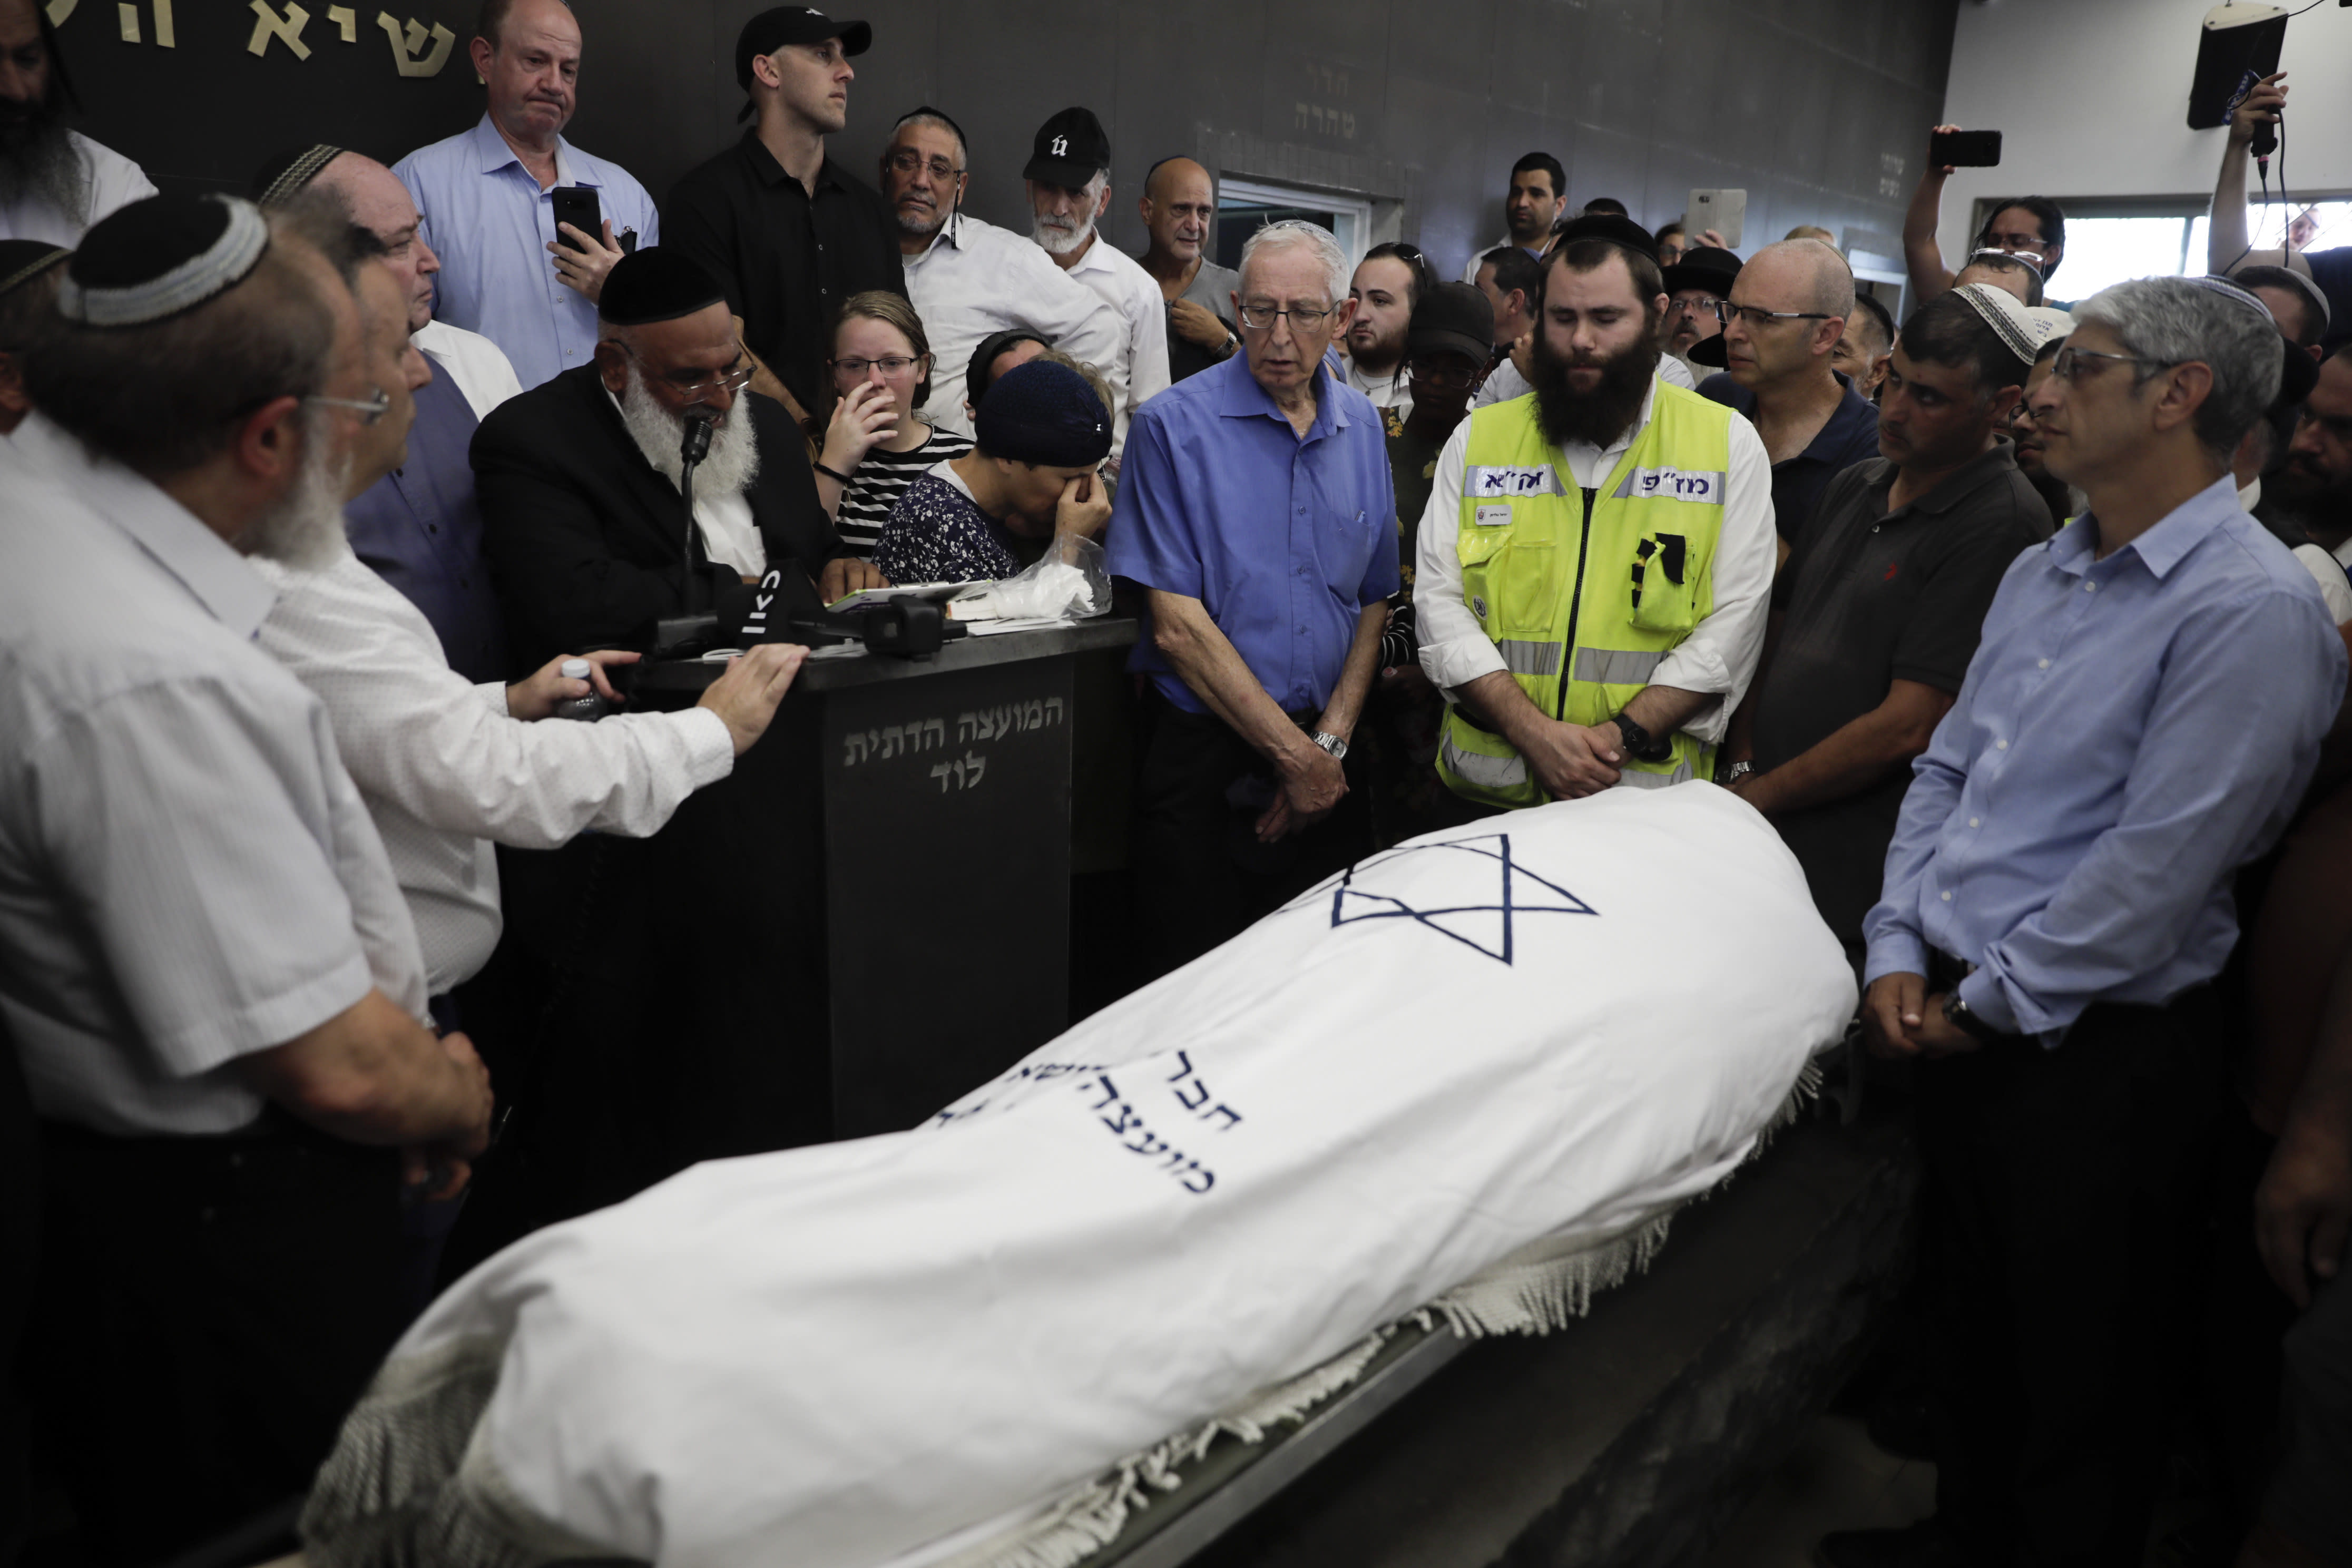 People attend the fineral of 17 year opld Rina Shnerb, in Lod, Israel, Friday, Aug. 23, 2019. Shnerb has died of wounds from an explosion in the West Bank that the Israeli military has described as a Palestinian attack. (AP Photo/Sebastian Scheiner)